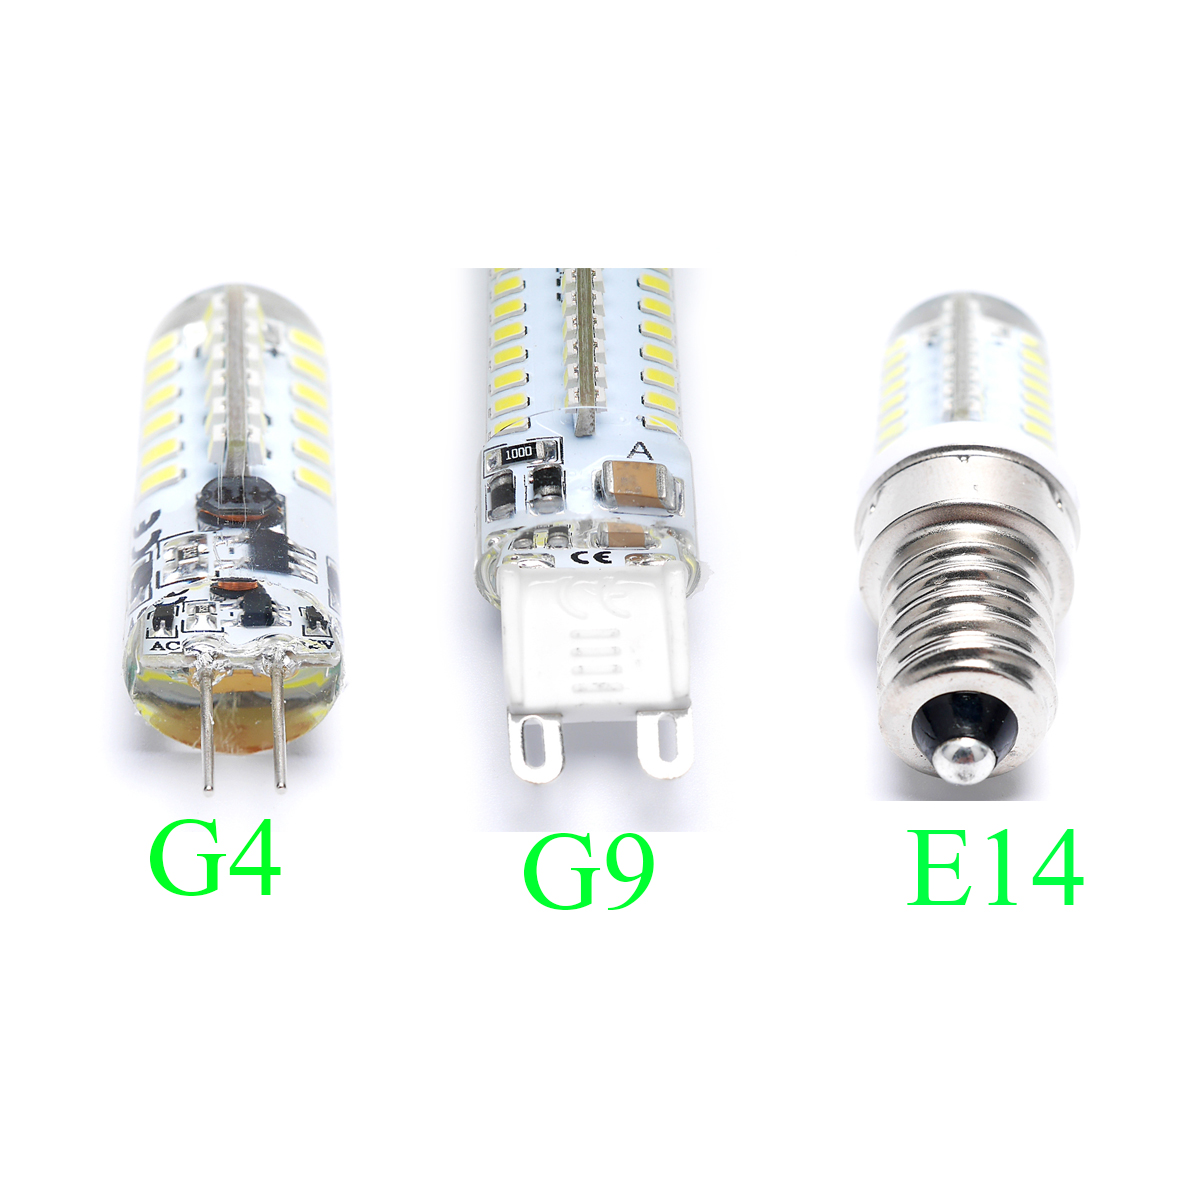 wow g4 g9 e14 led light capsule bulbs replace halogen. Black Bedroom Furniture Sets. Home Design Ideas